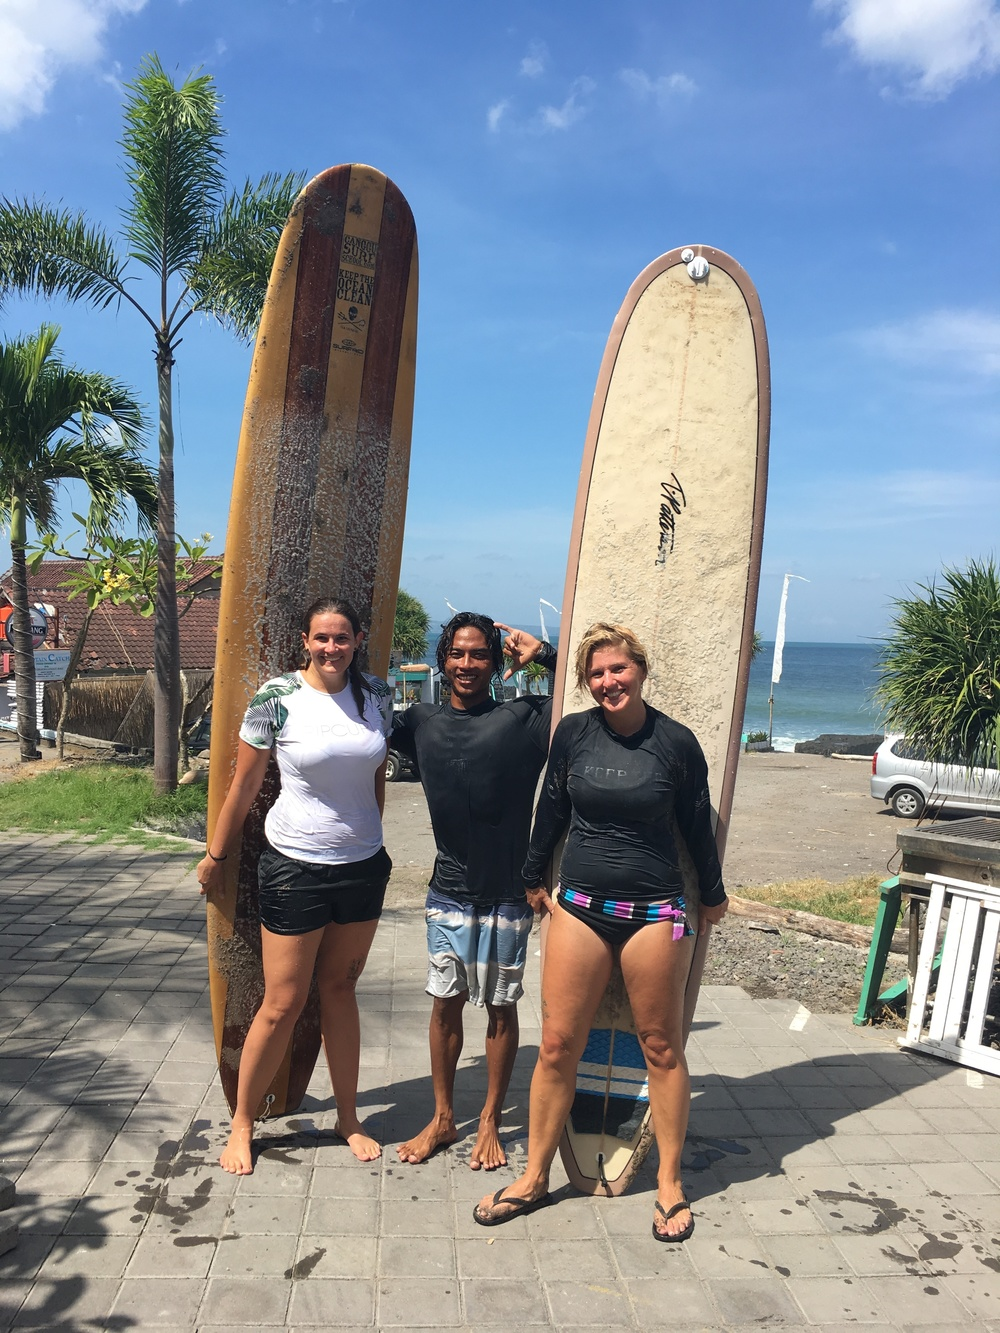 Gucci from Austria, Ngurah, and I after our surf lesson